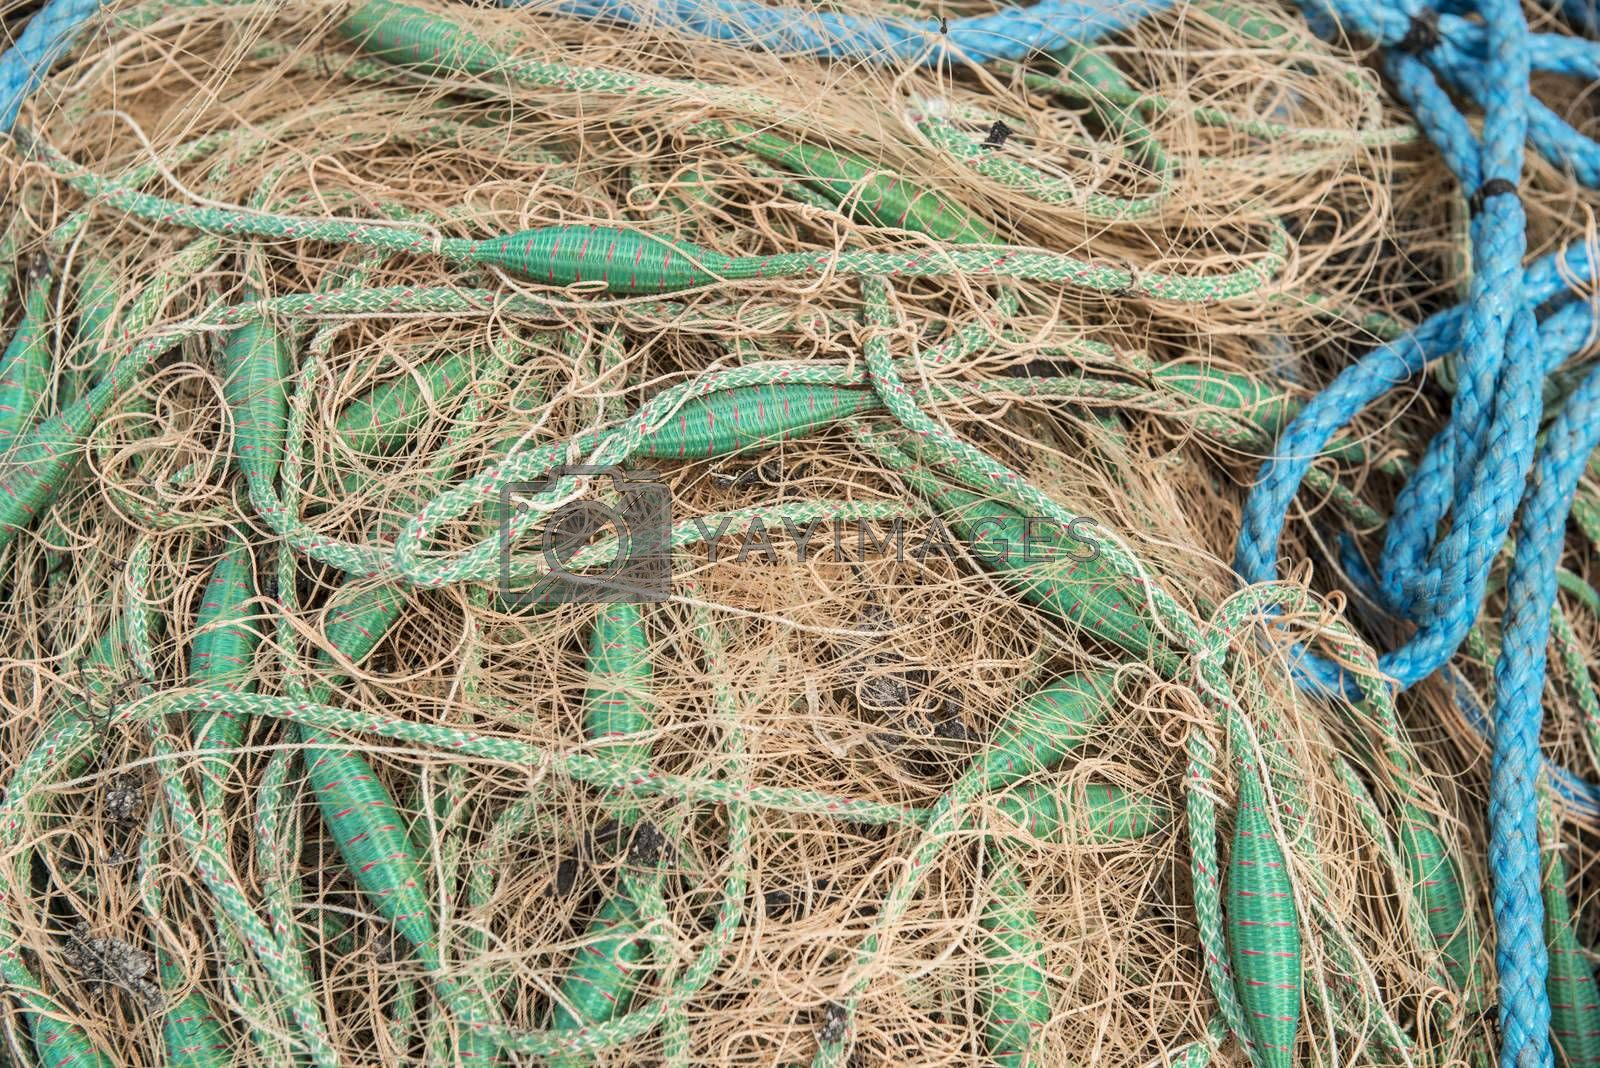 Crowded of fishing net with green and blue ropes